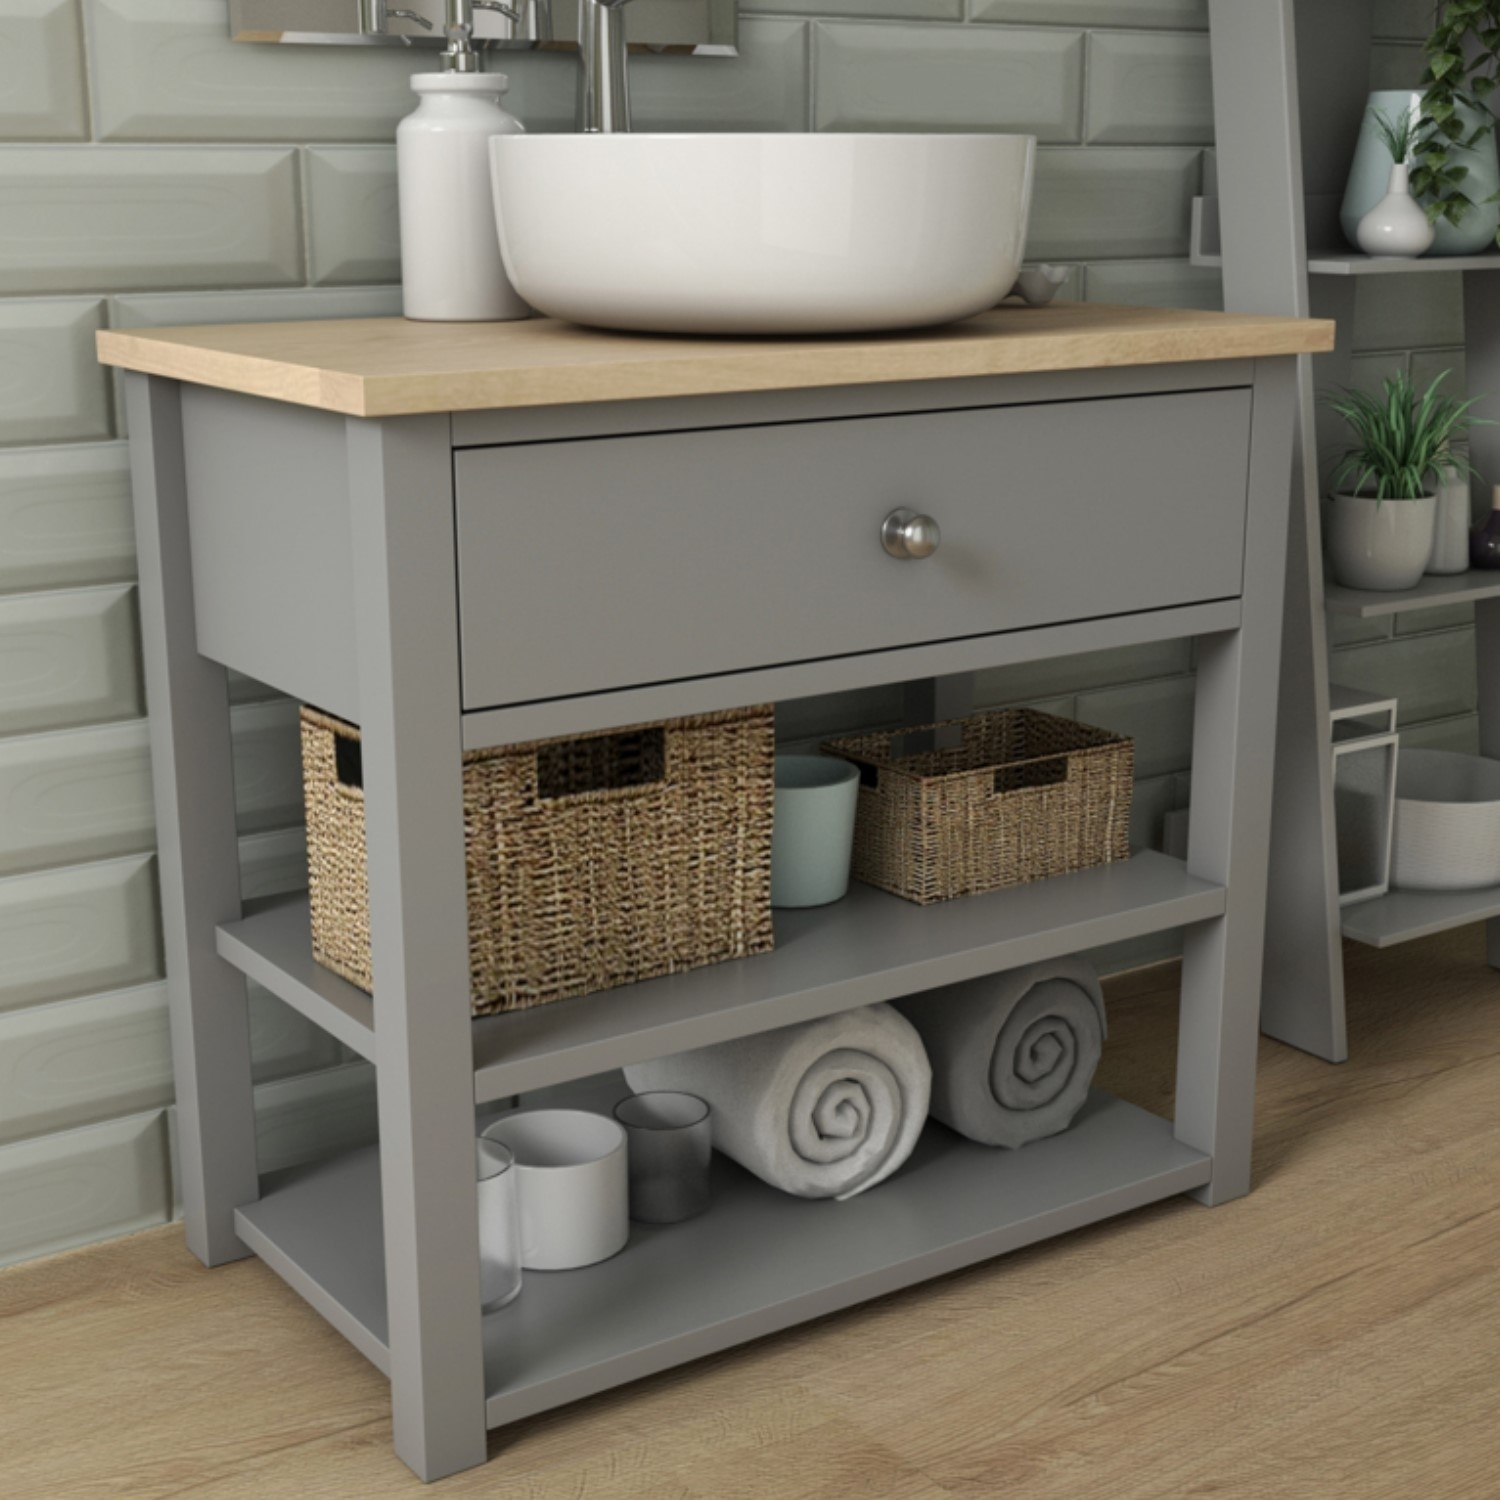 840mm open storage vanity unit with arabella countertop basin whitby